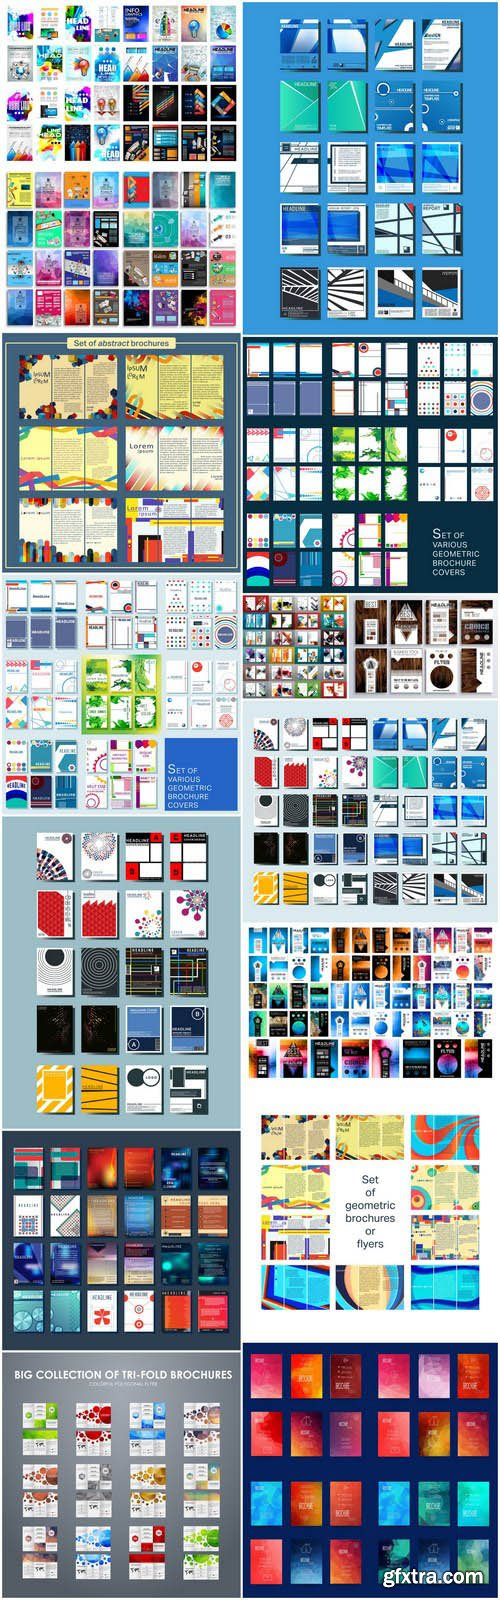 Broshure Cover Template Set - 15 Vector